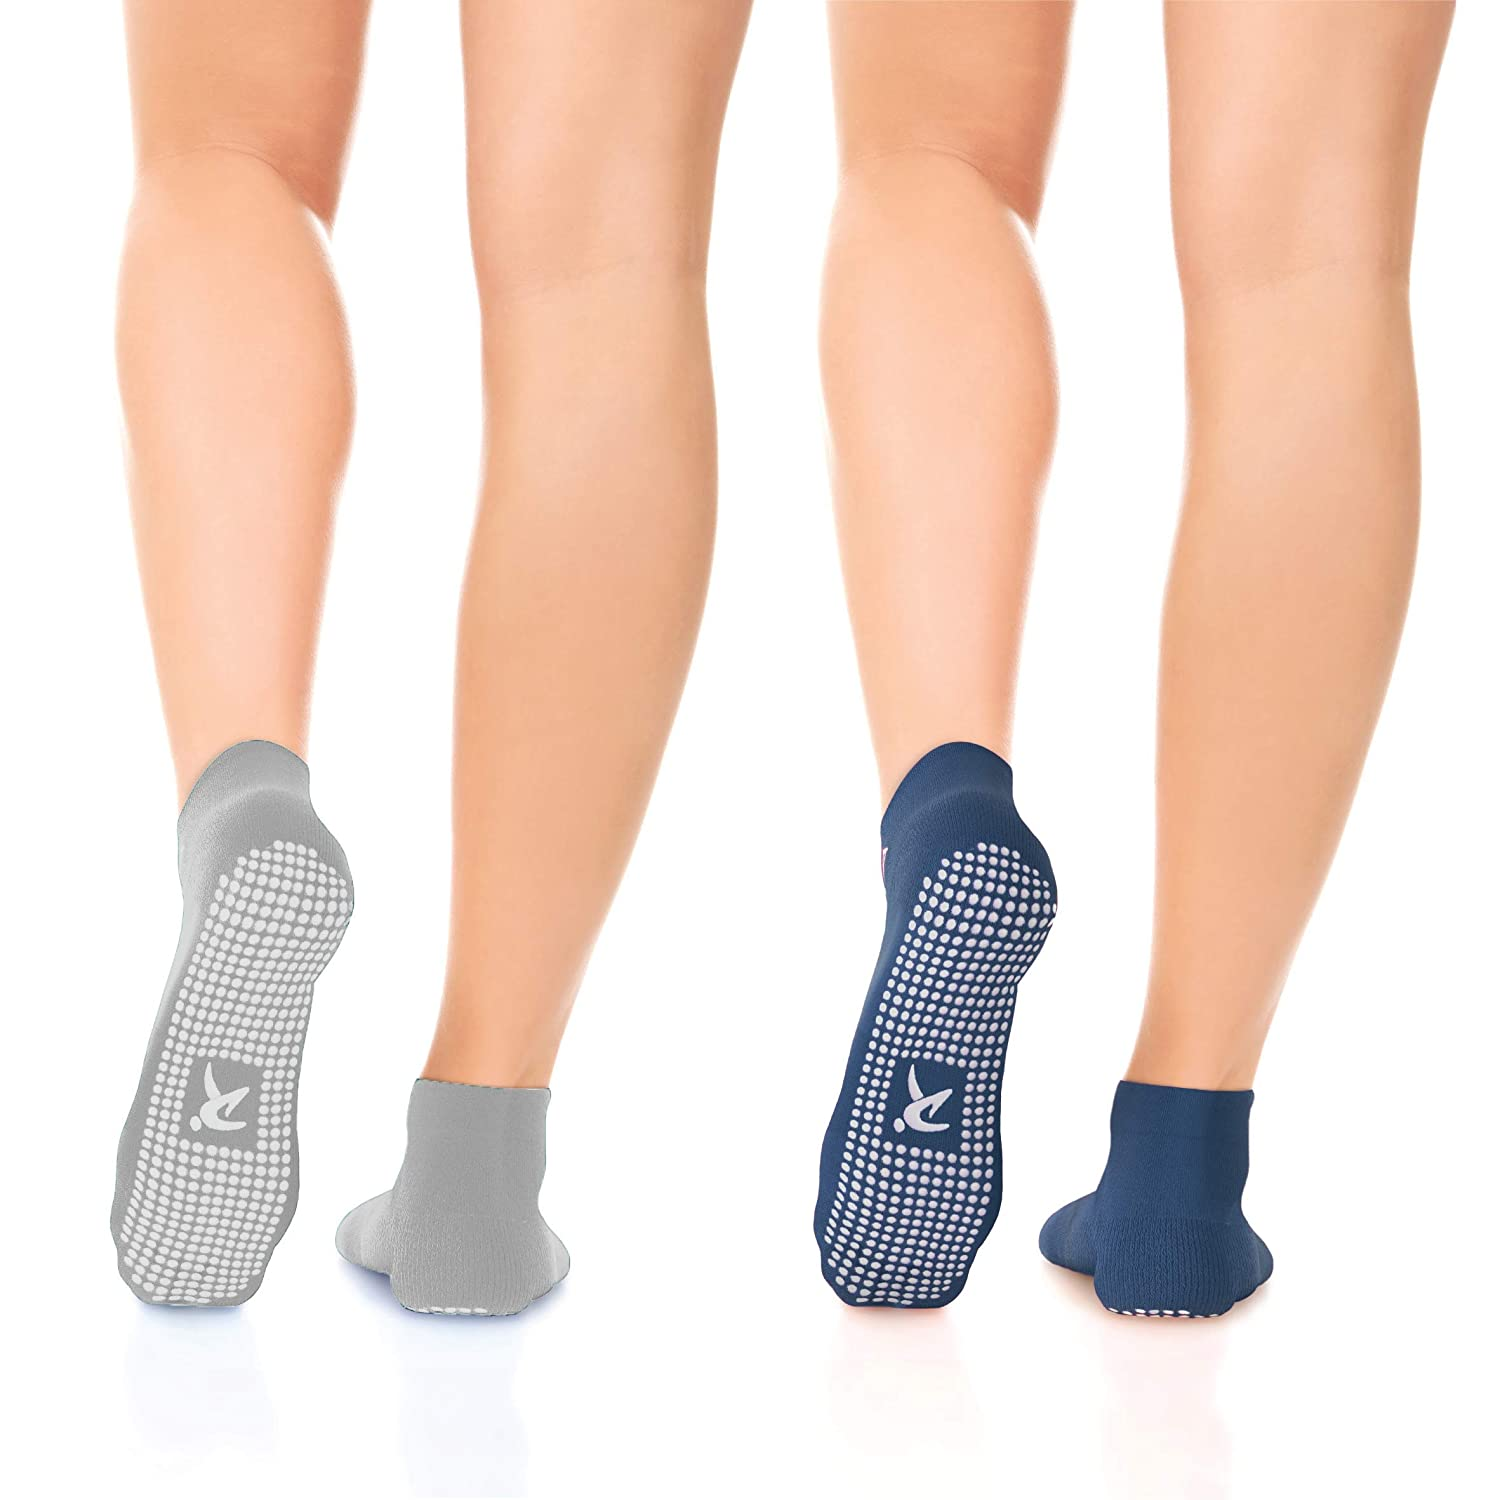 Rymora Non Slip Grip Socks for Women and Men Barre /& Home Trampoline Yoga 2 Pairs - Perfect for Hospital